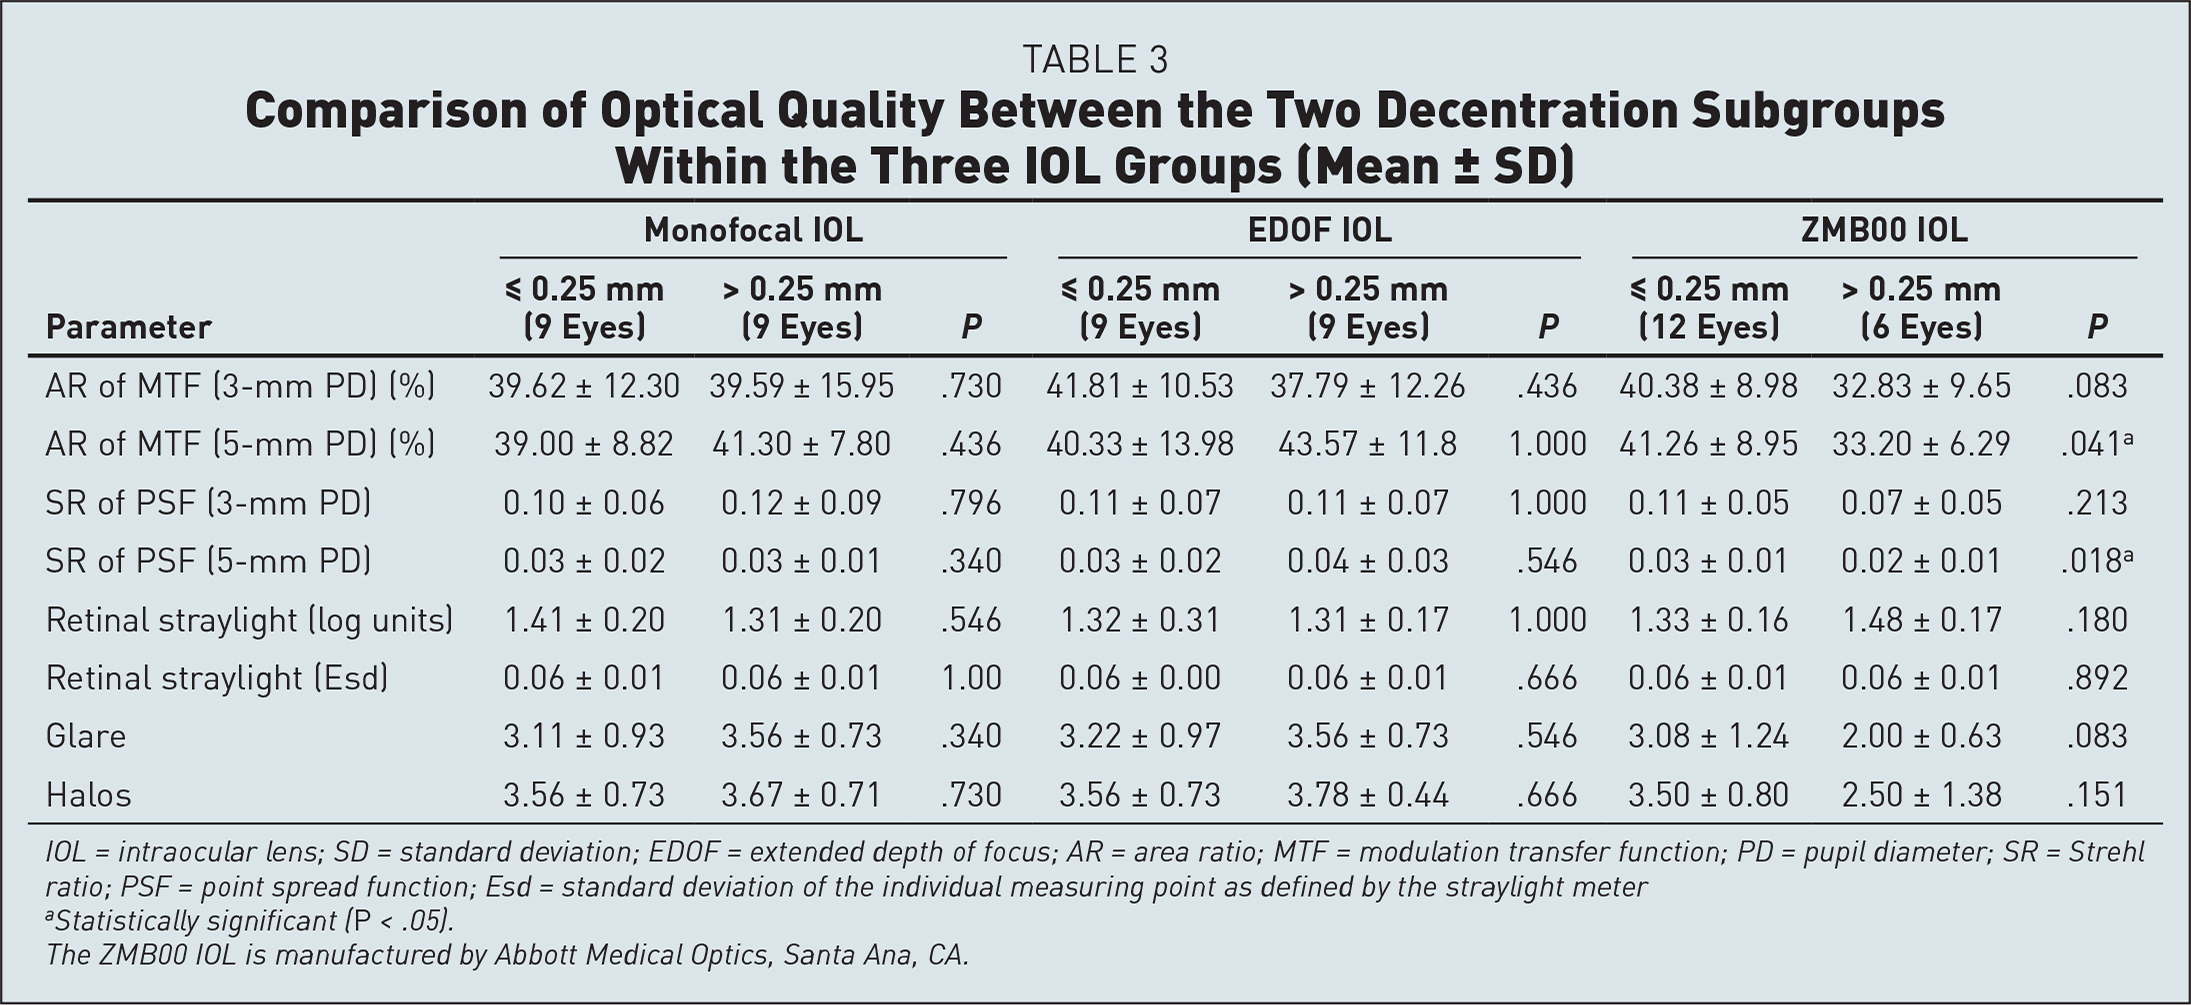 Comparison of Optical Quality Between the Two Decentration Subgroups Within the Three IOL Groups (Mean ± SD)